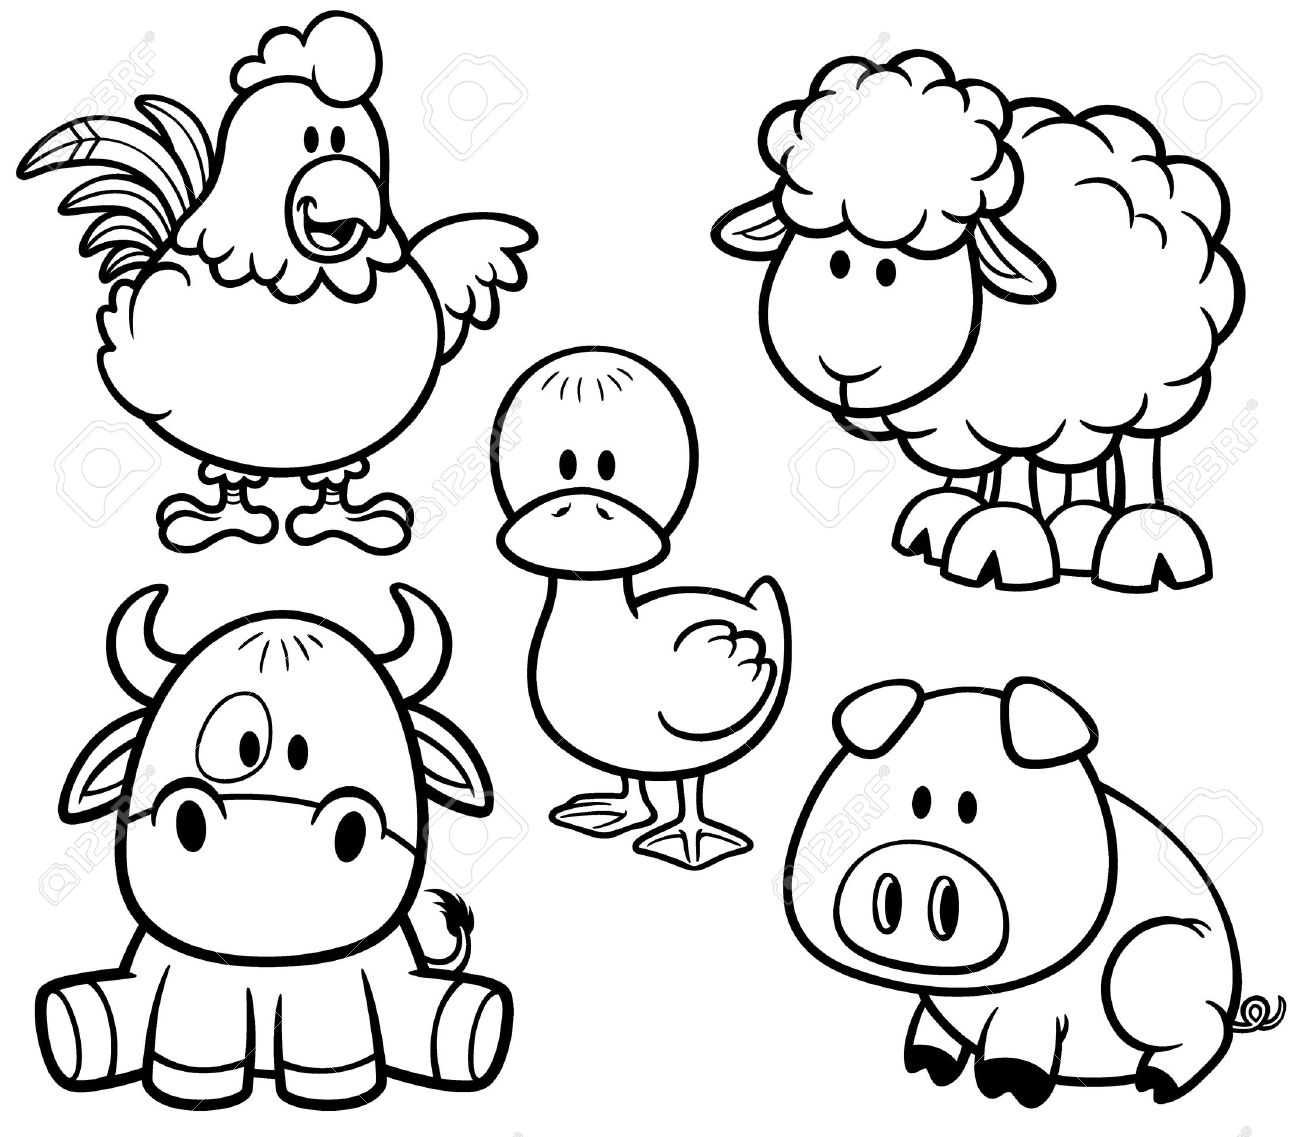 animal printable coloring pages anime animals coloring pages download and print for free pages coloring animal printable